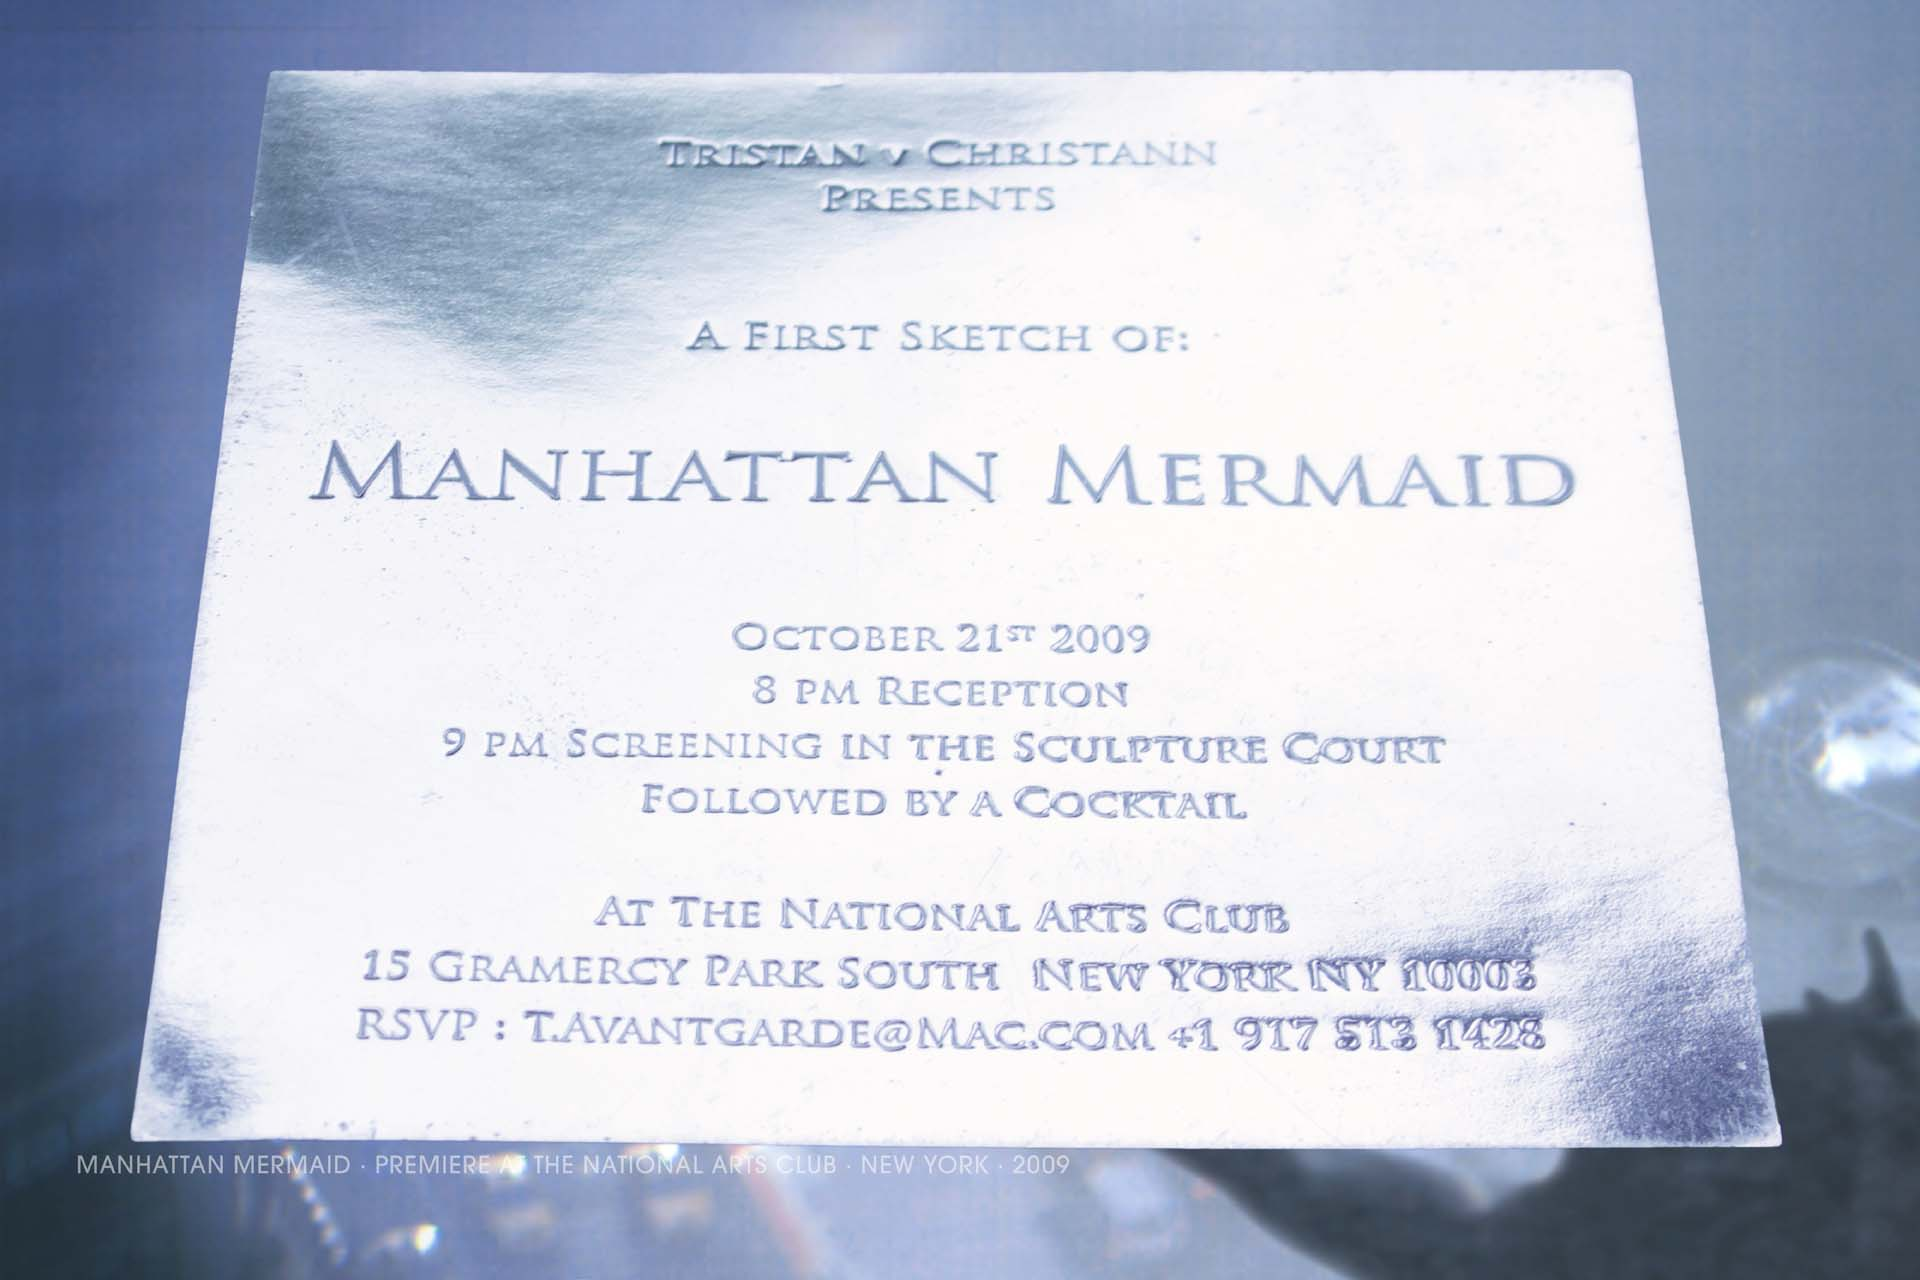 Tristan V Christann, Fantasy, Gaia Award, Moondance Filmfestival, Spirit of Da Vinci, Manhattan Mermaid_05 invite NAC 2009